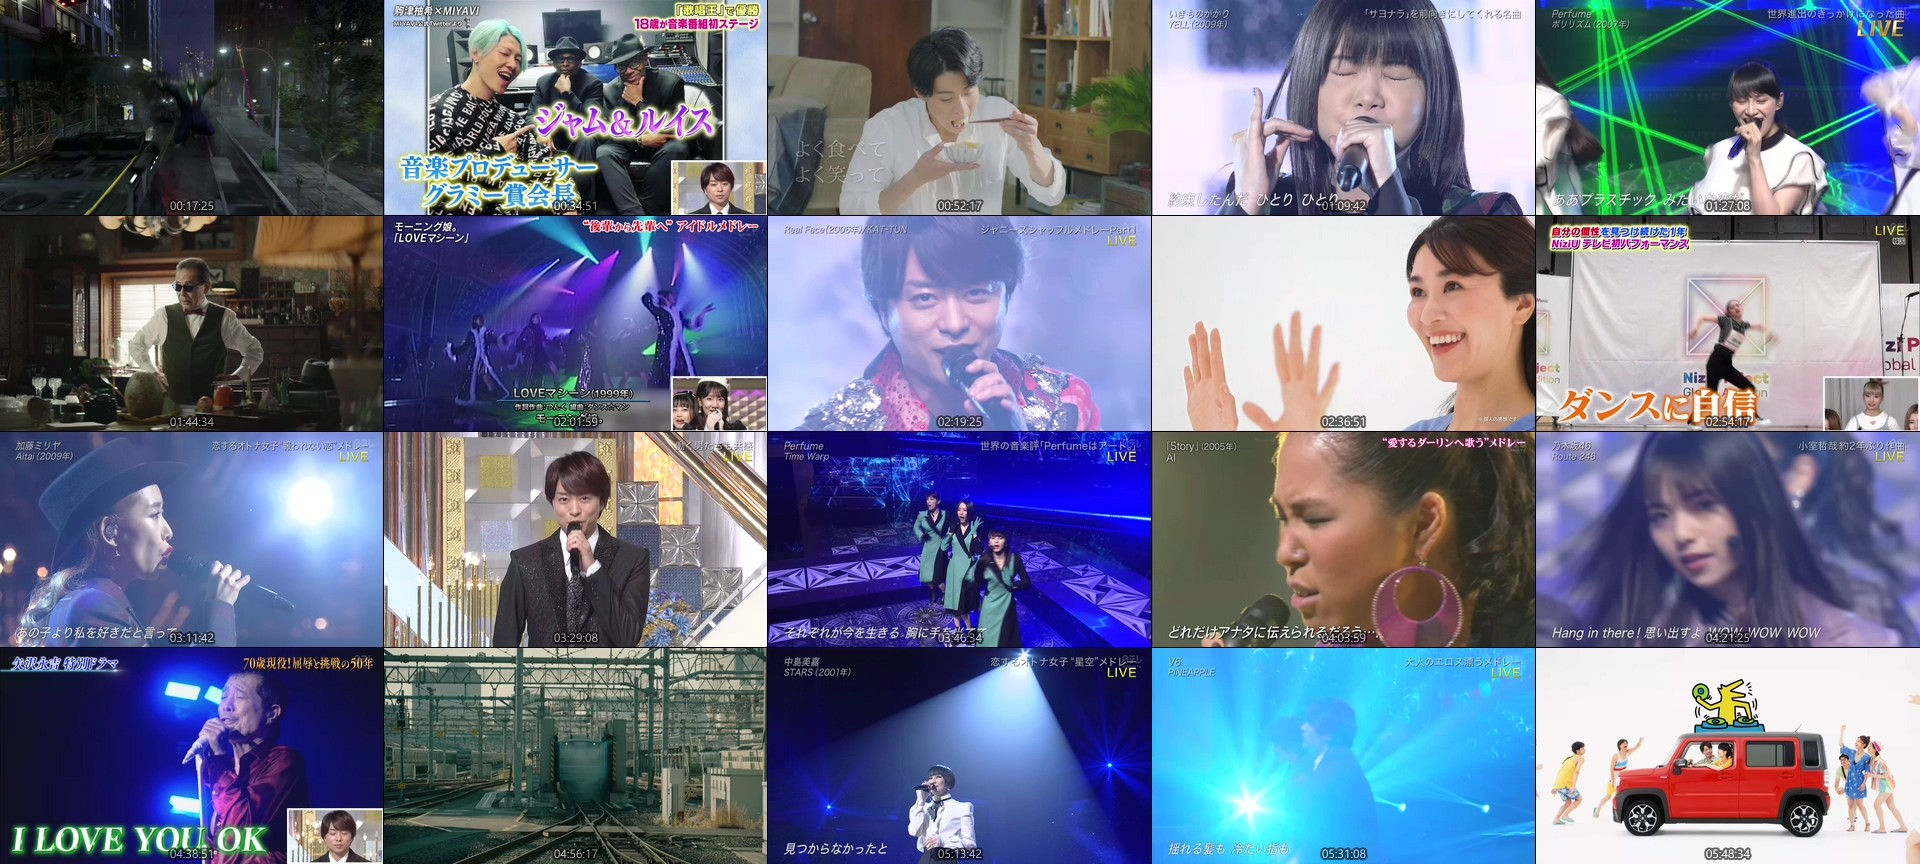 THE MUSIC DAY – THE MUSIC DAY Part2 (NTV 2020.09.12)